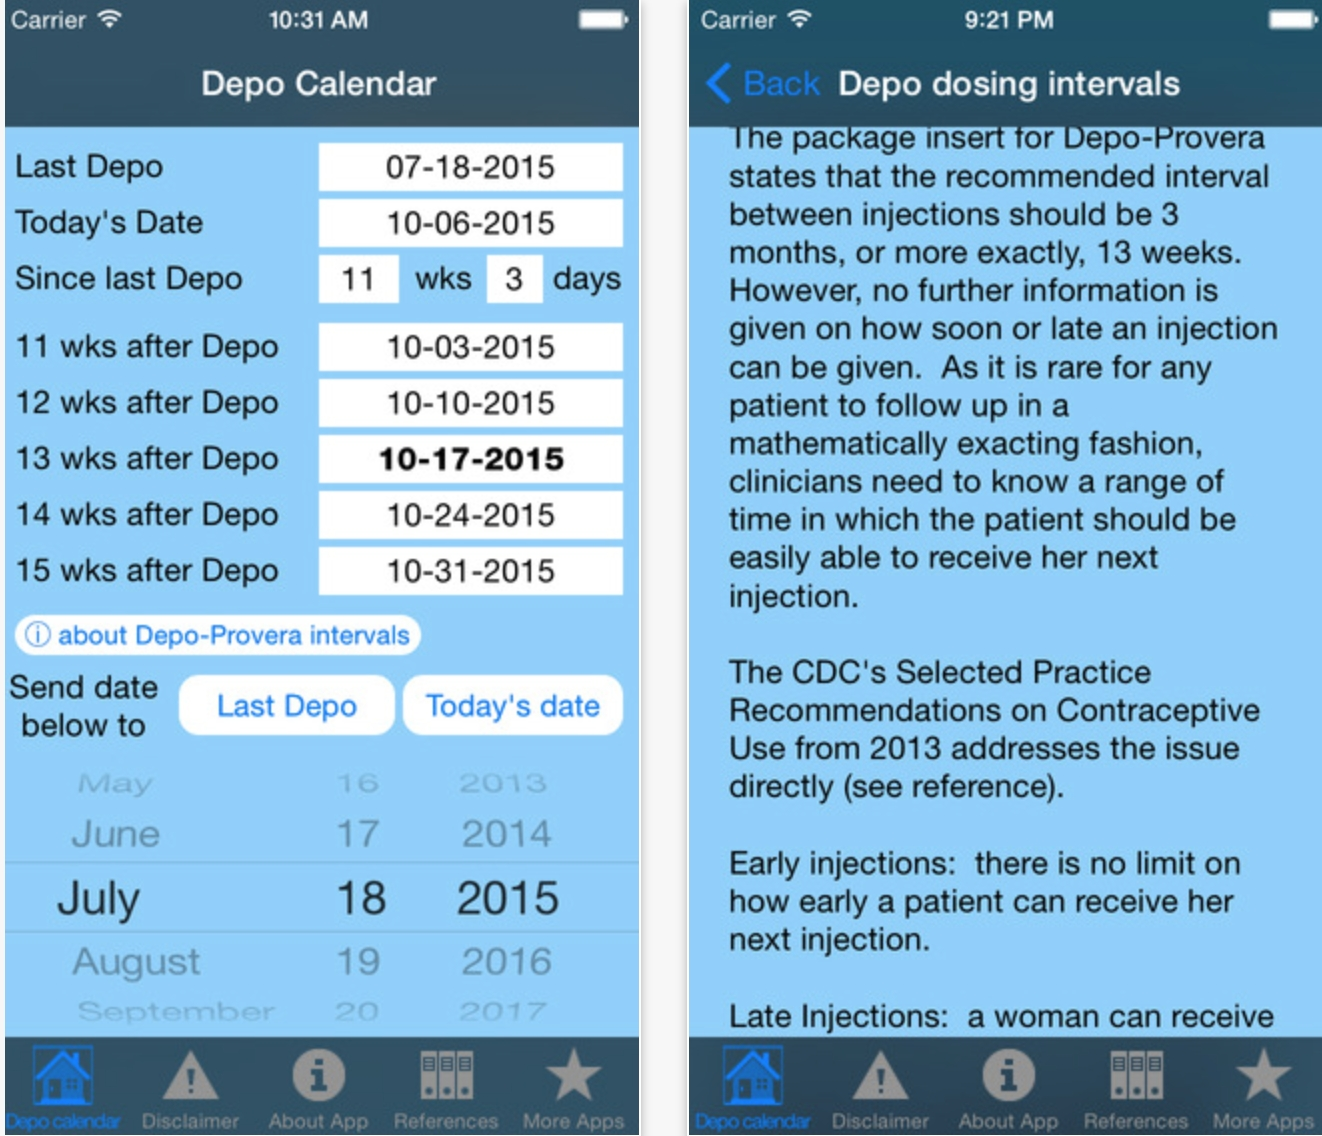 Depo Calendar App Could Significantly Improve Contraception  Depo Caledneer